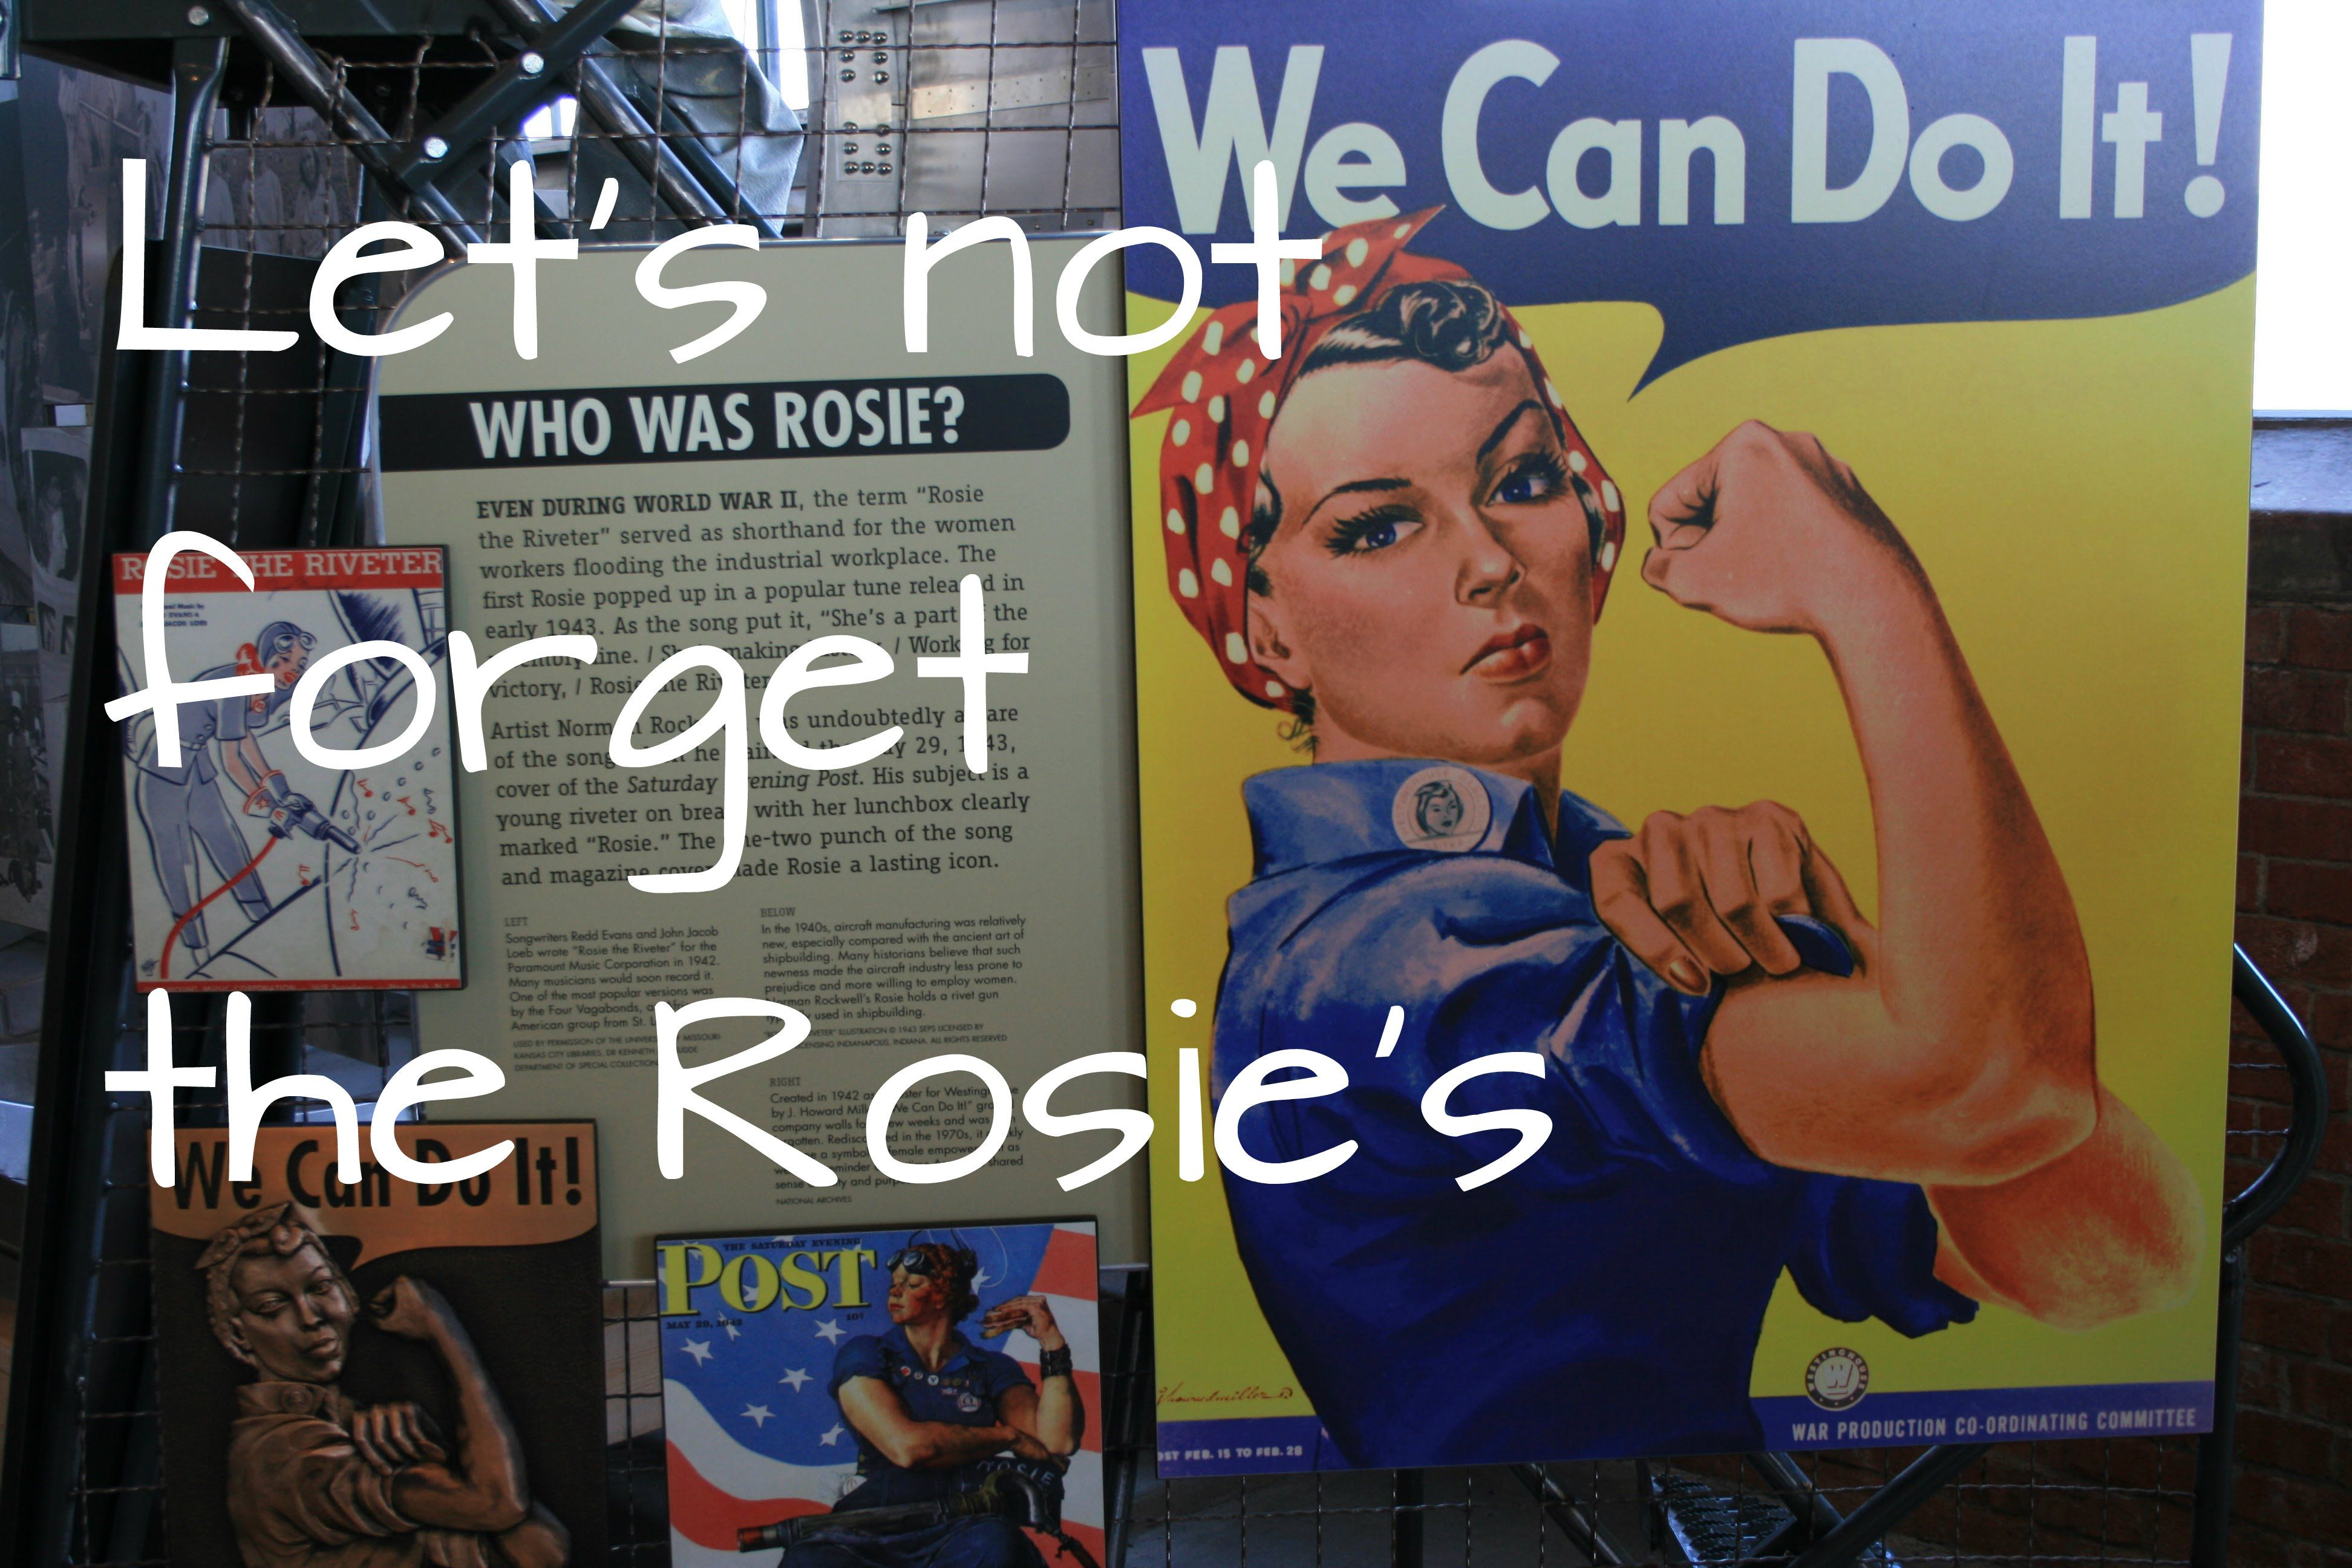 Httpuntilsuburbialets not forget the rosies east bay the image of the woman in a blue worker outfit flexing her biceps was for me always a symbol for equal rights in the workforce buycottarizona Image collections